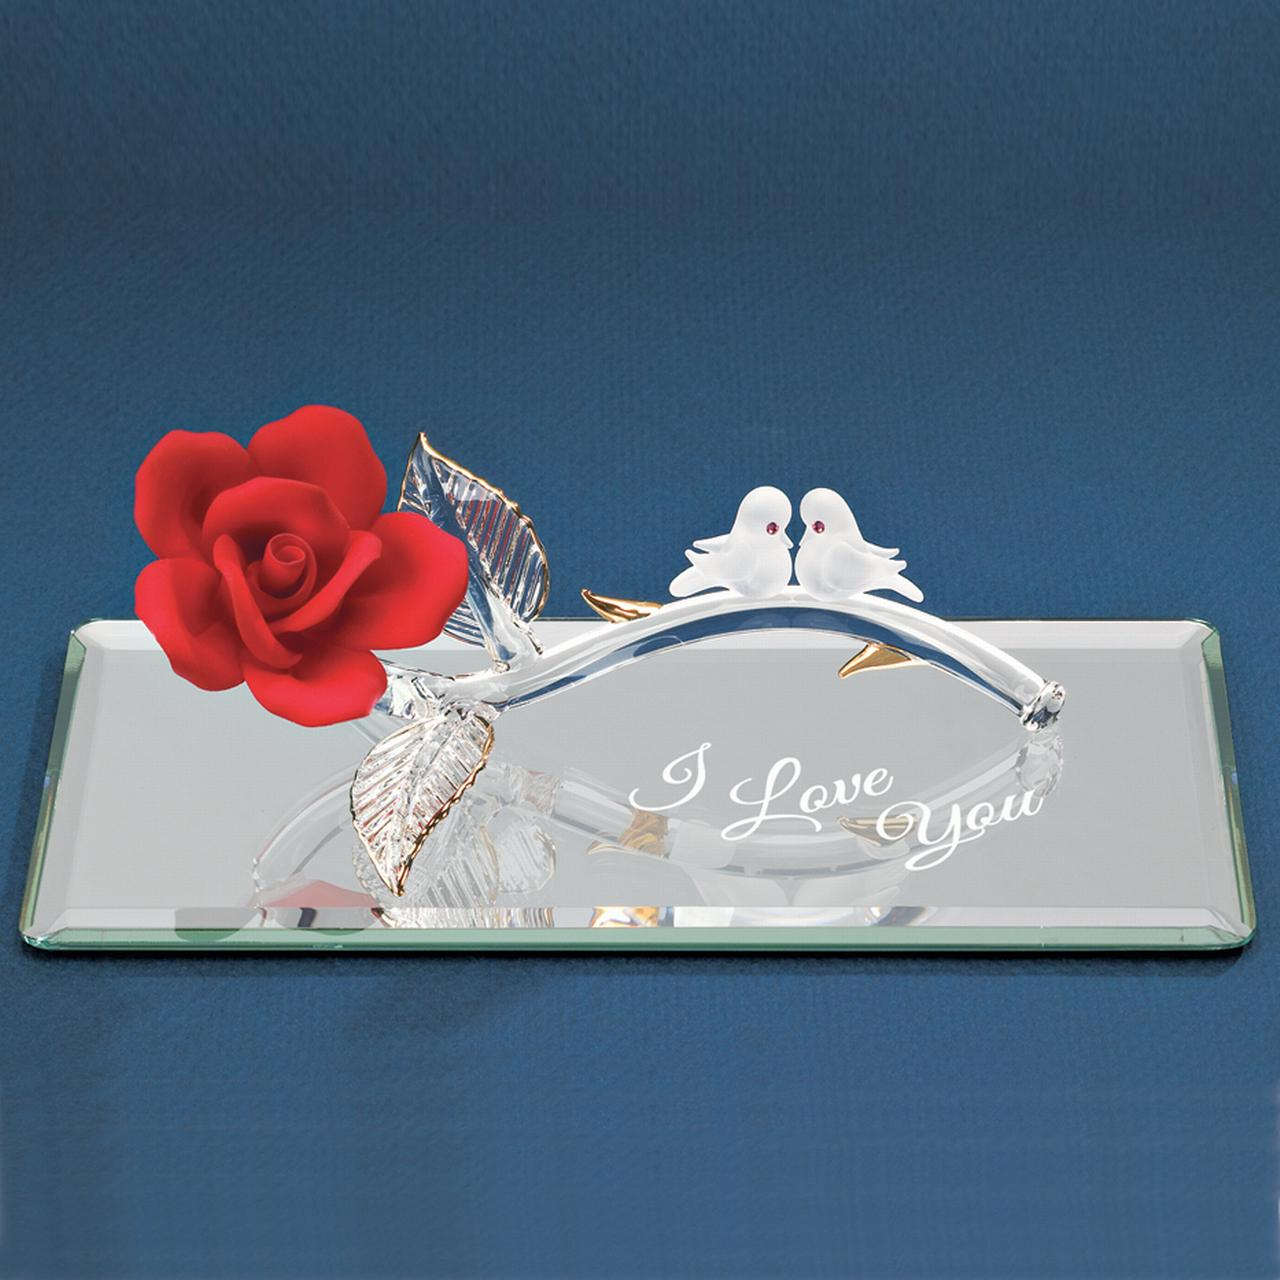 I Love You Red Rose Doves Glass Figurine Glas Baron For Women